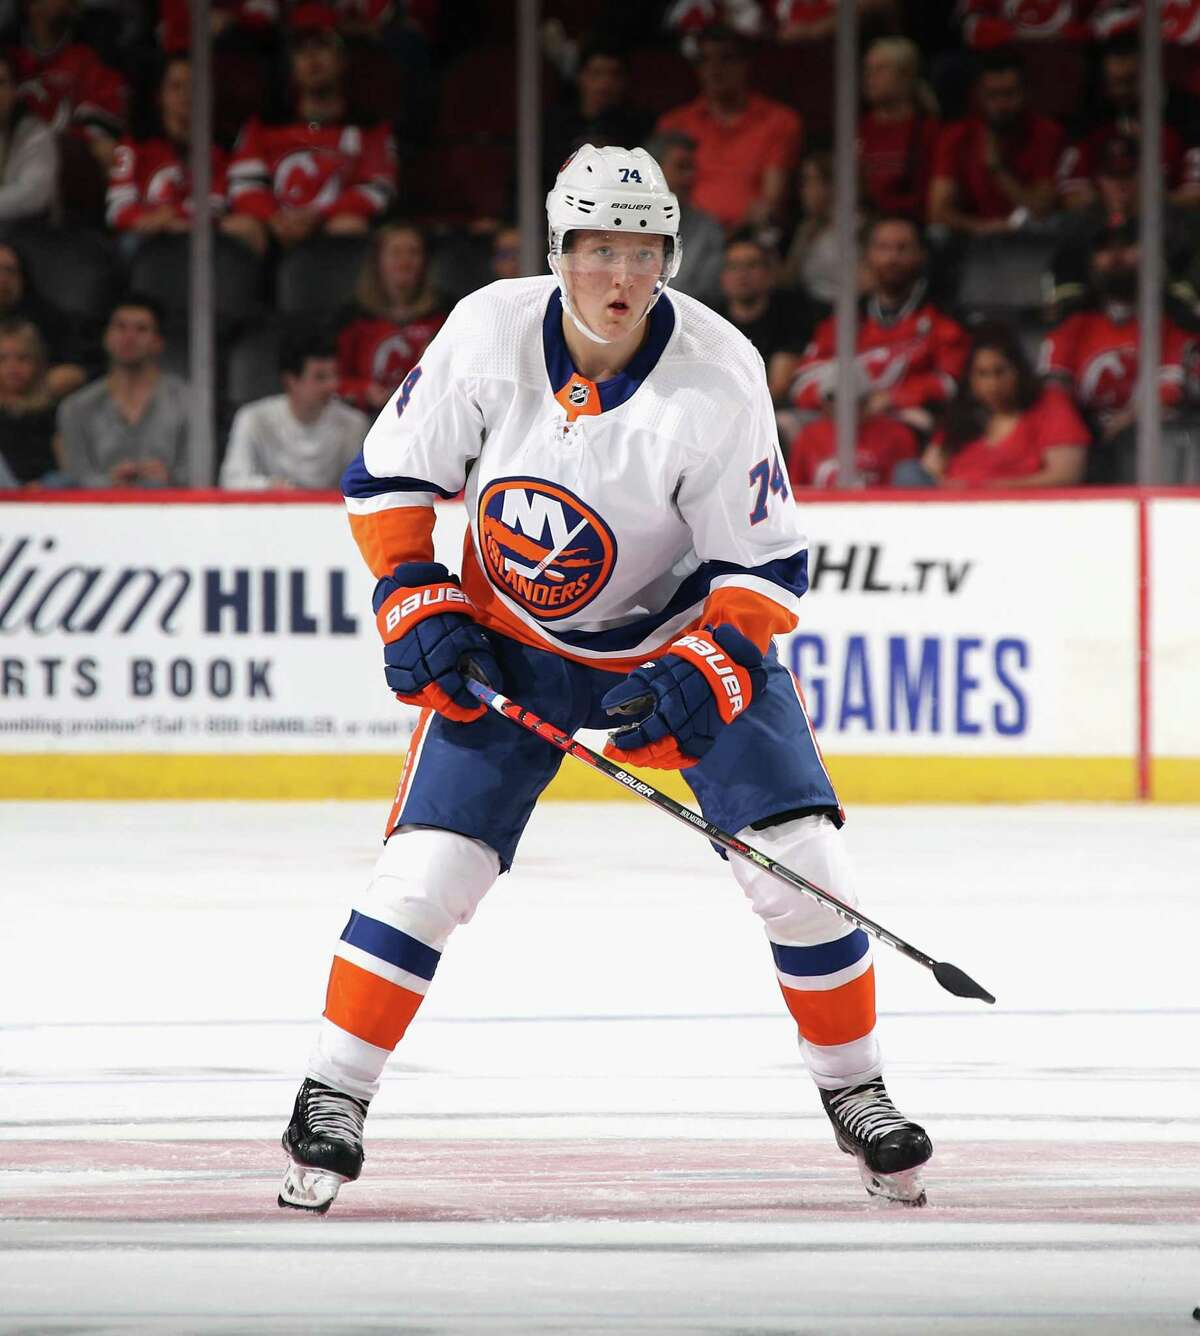 NEWARK, NEW JERSEY - SEPTEMBER 21: Simon Holmstrom #74 of the New York Islanders skates against the New Jersey Devils at the Prudential Center on September 21, 2019 in Newark, New Jersey. The Devils defeated the Islanders 4-3. (Photo by Bruce Bennett/Getty Images)